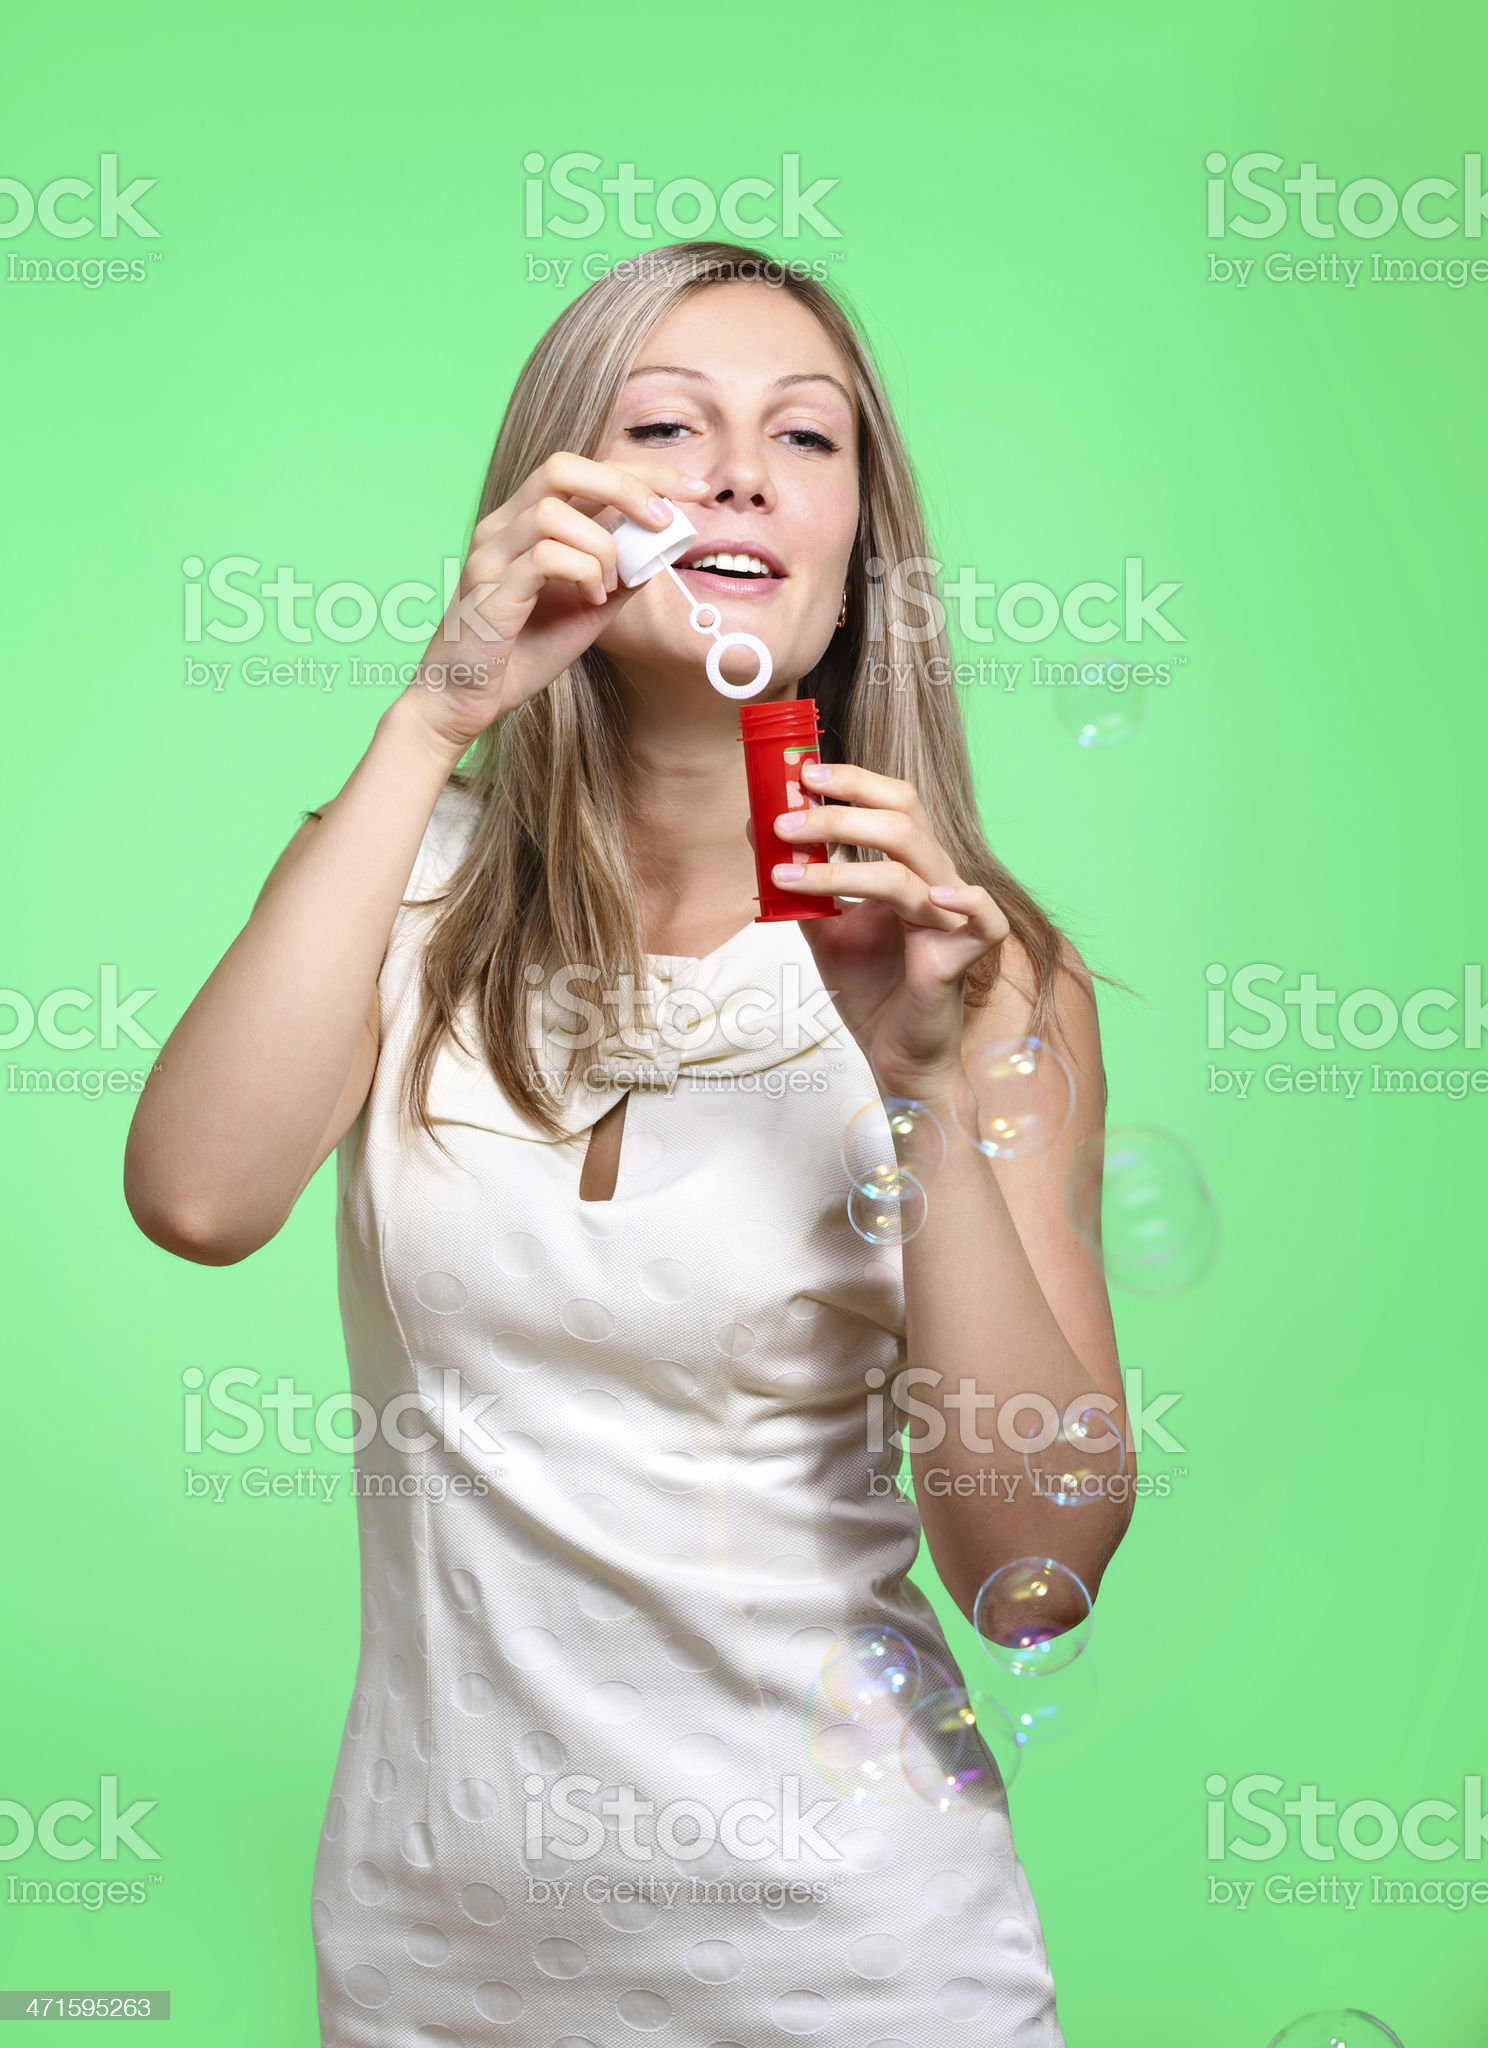 lather royalty-free stock photo